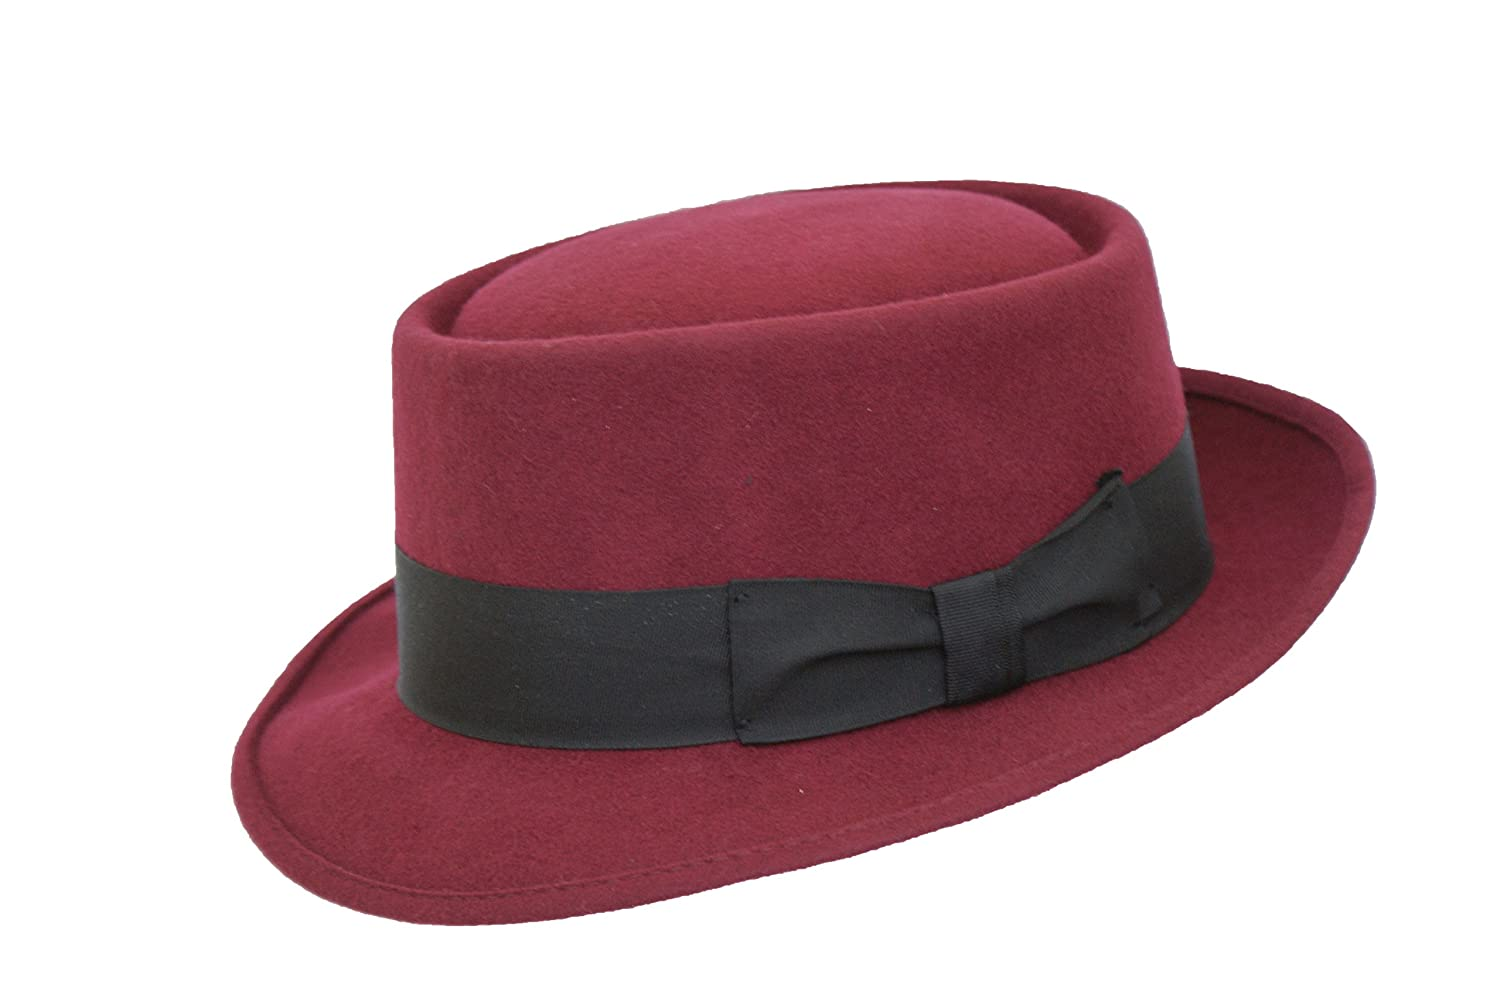 MAROON HIGH QUALITY HAND MADE 100% WOOL FELT PORKPIE TRILBY HAT WITH BLACK BAND